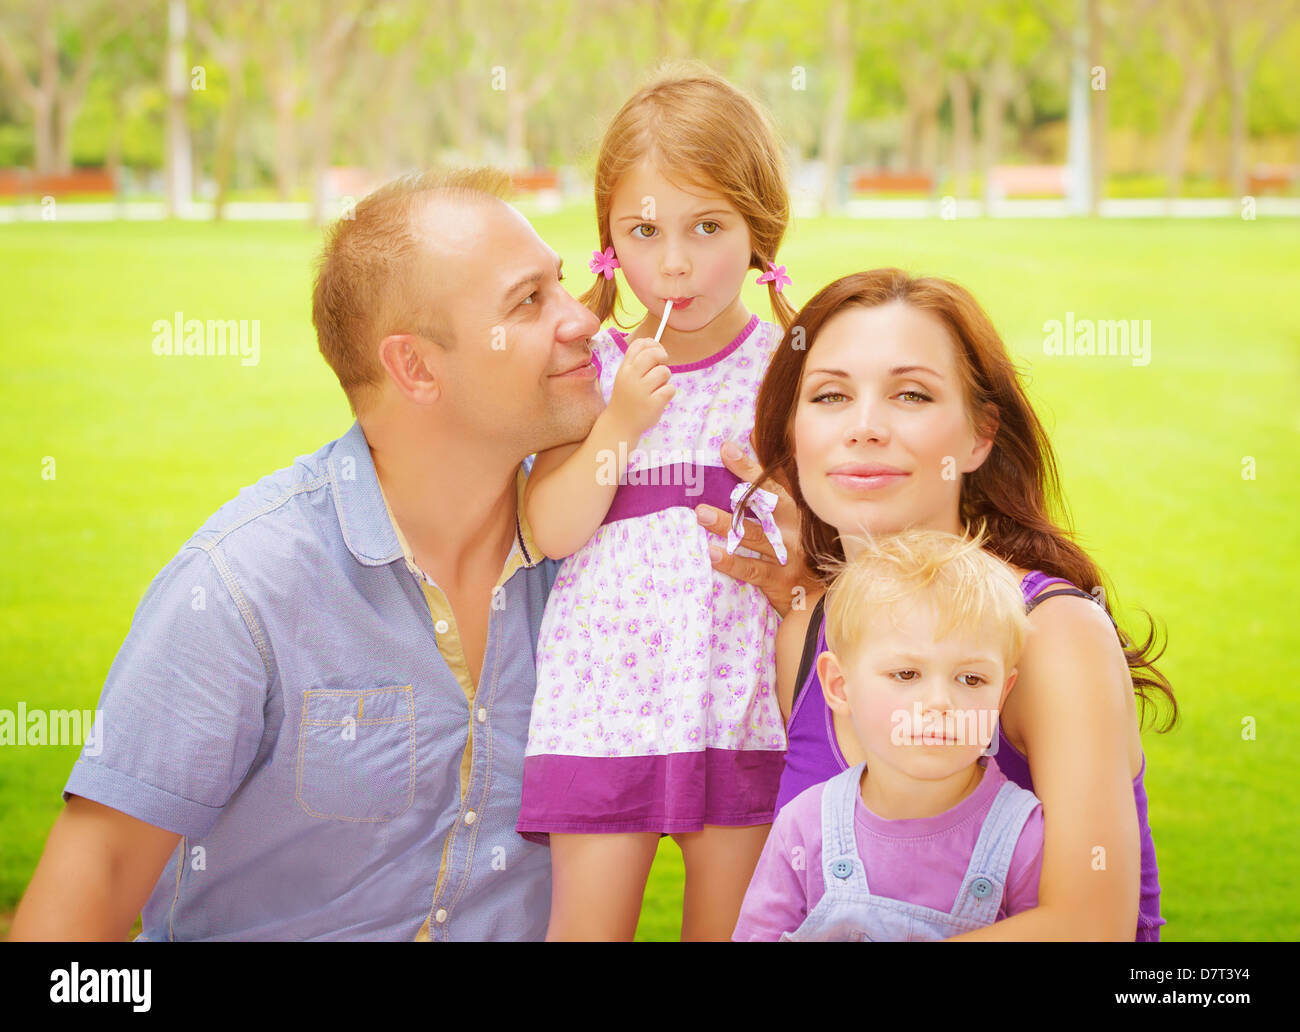 Portrait of happy family having fun outdoors, young parents with two cute kids in spring park, spending time together - Stock Image